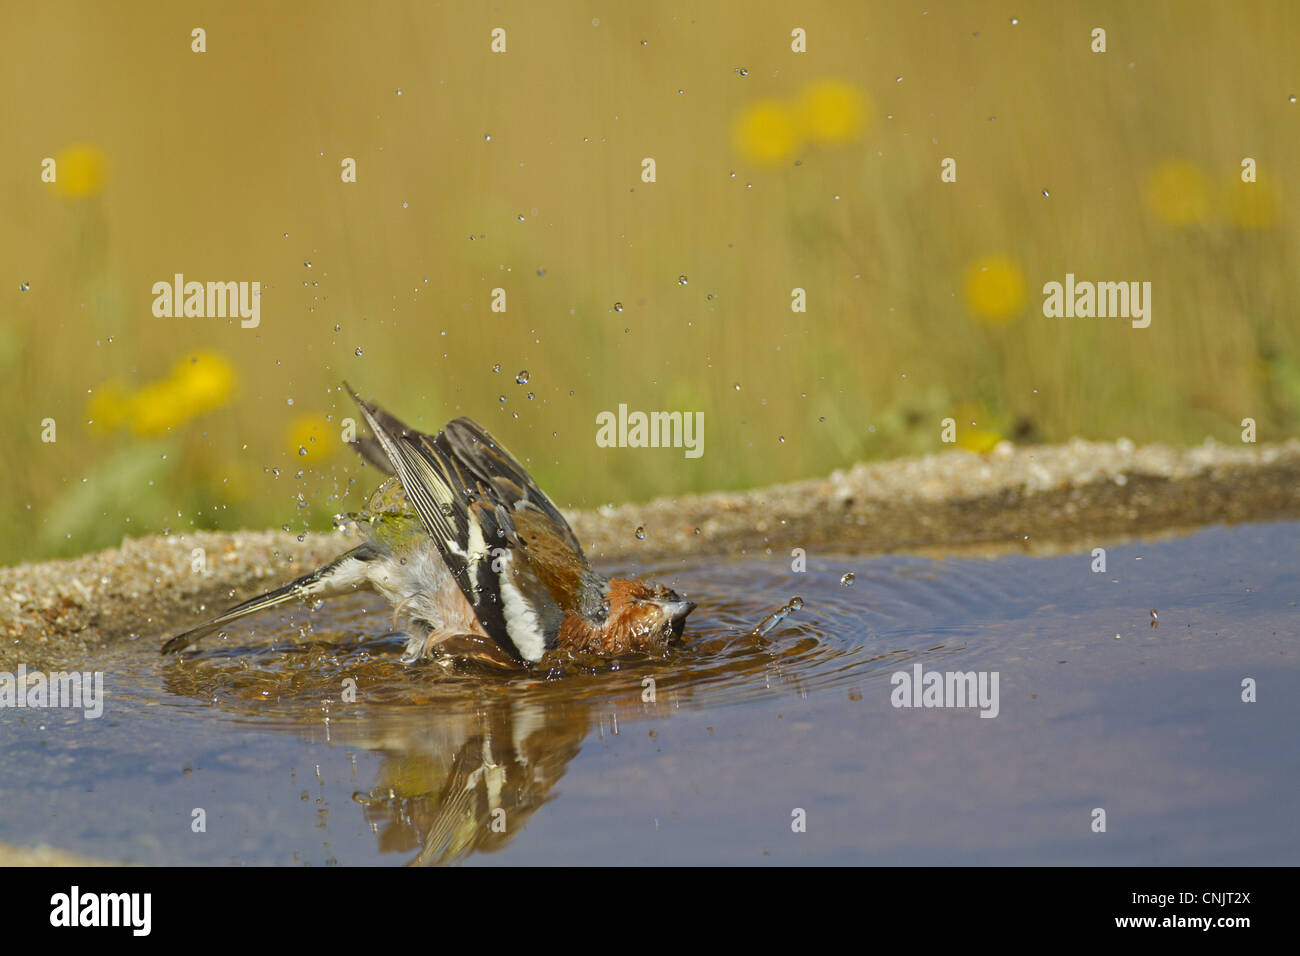 Chaffinch (Fringilla coelebs) adult male, bathing in pool, Spain, may - Stock Image